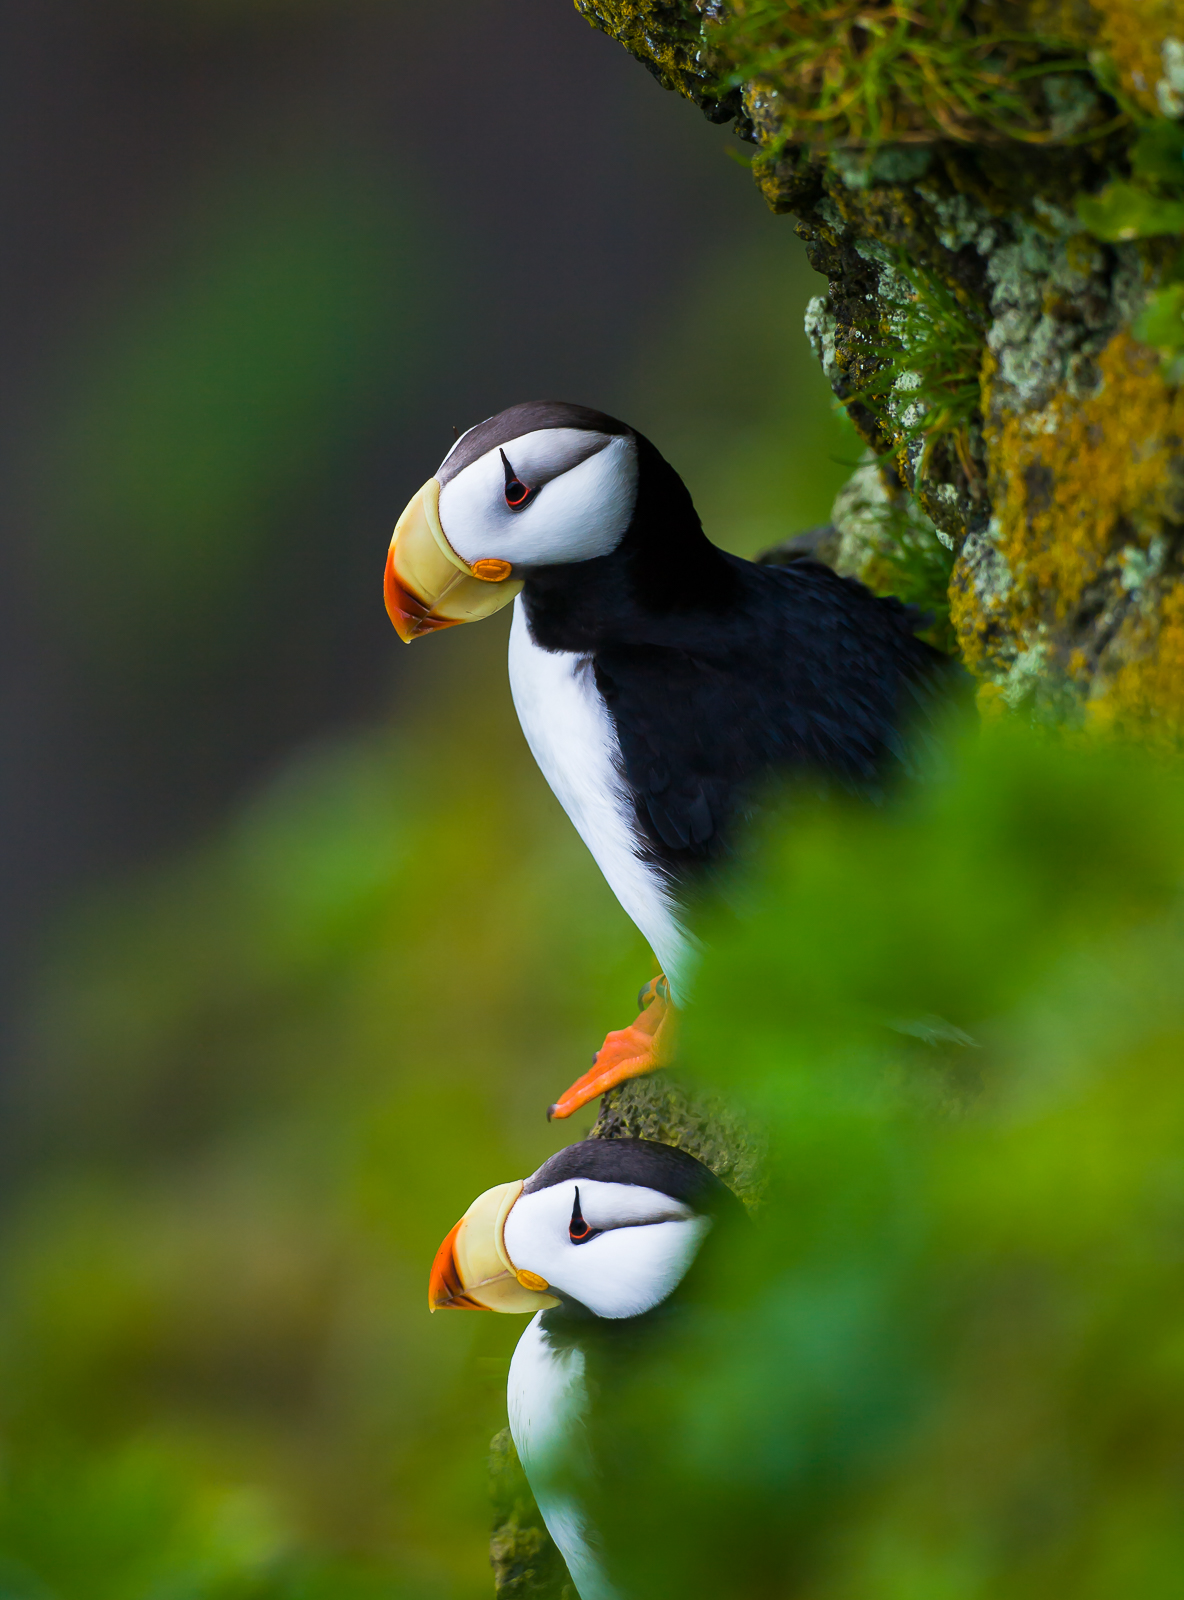 Cliff Dwellers,Alaska,Horned Puffin, Saint Paul Island,vertical,green, photo